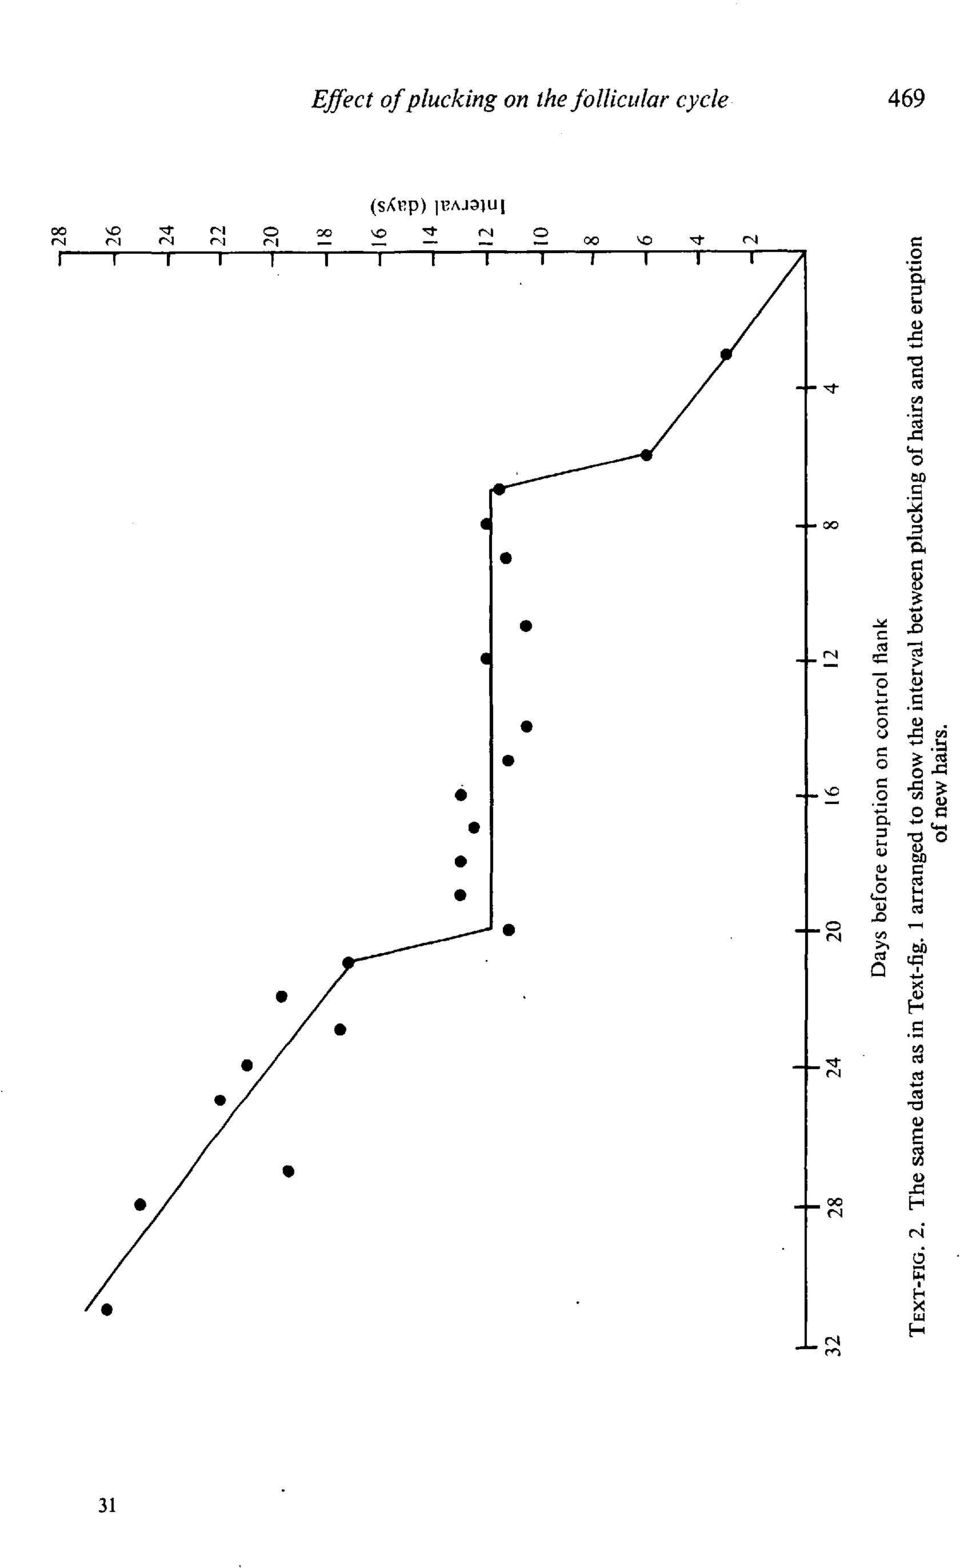 2. The same data as in Text-fig.